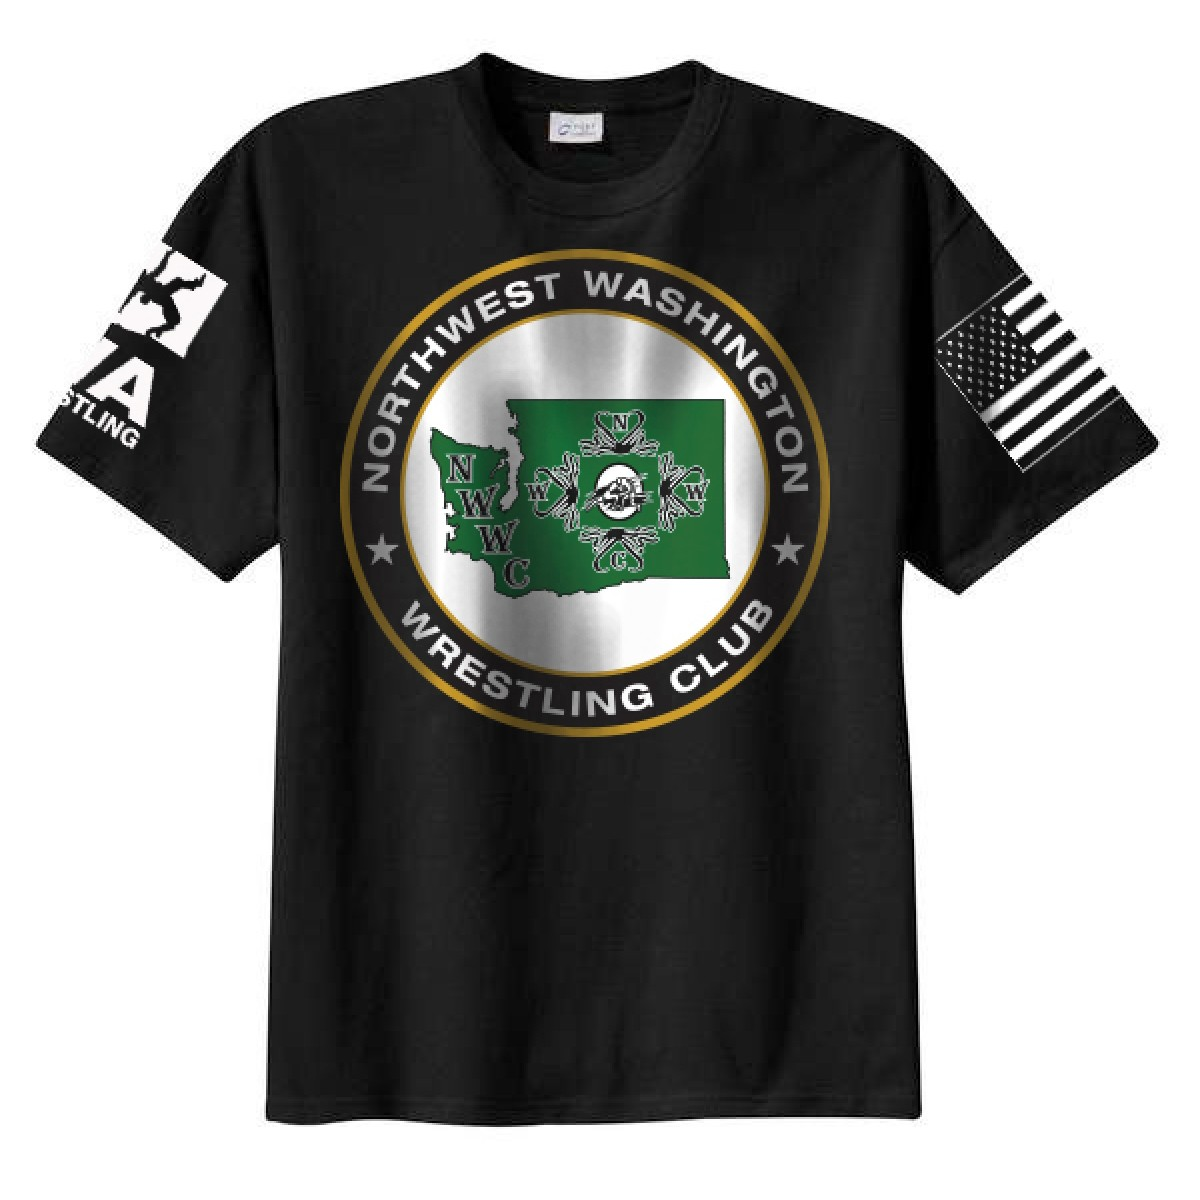 NWWC Black T-Shirt With Green Logo